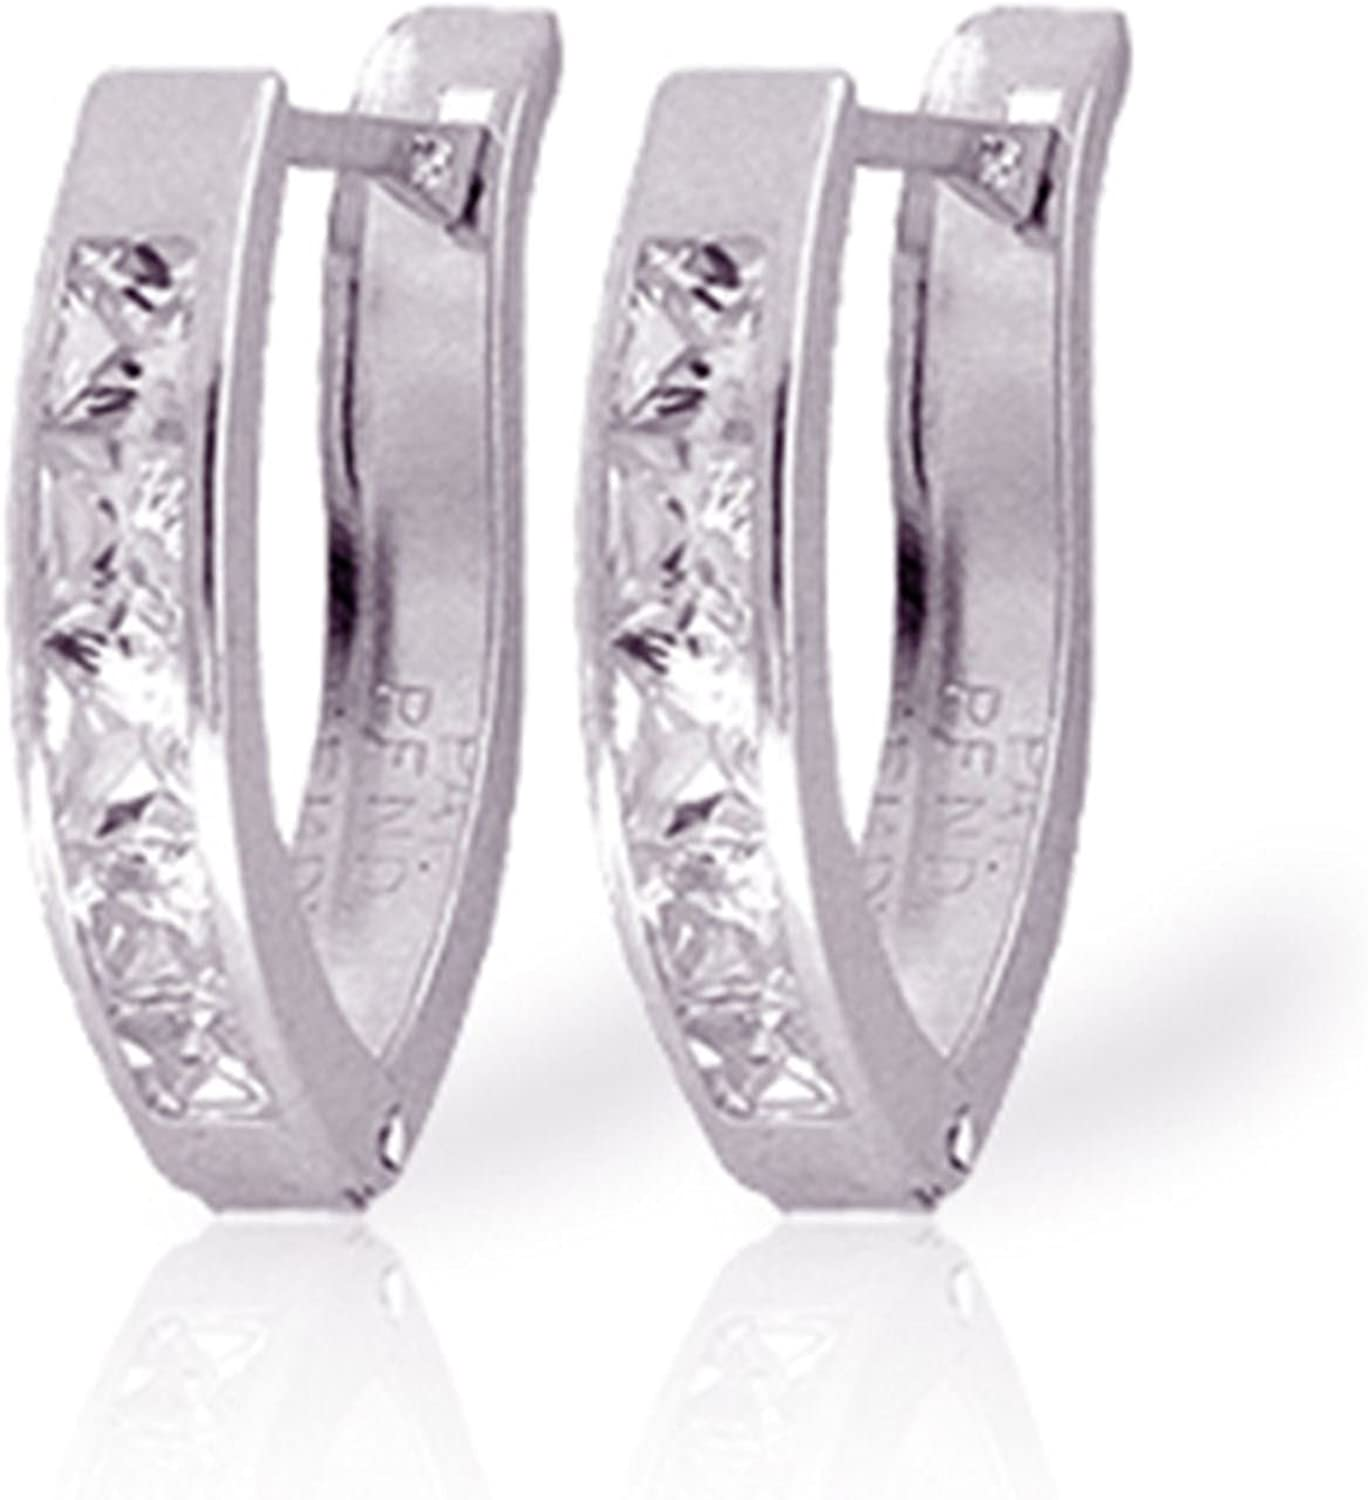 ALARRI 1.58 Carat 14K Solid White Gold Nothing Worth More Cubic Zirconia Earrings